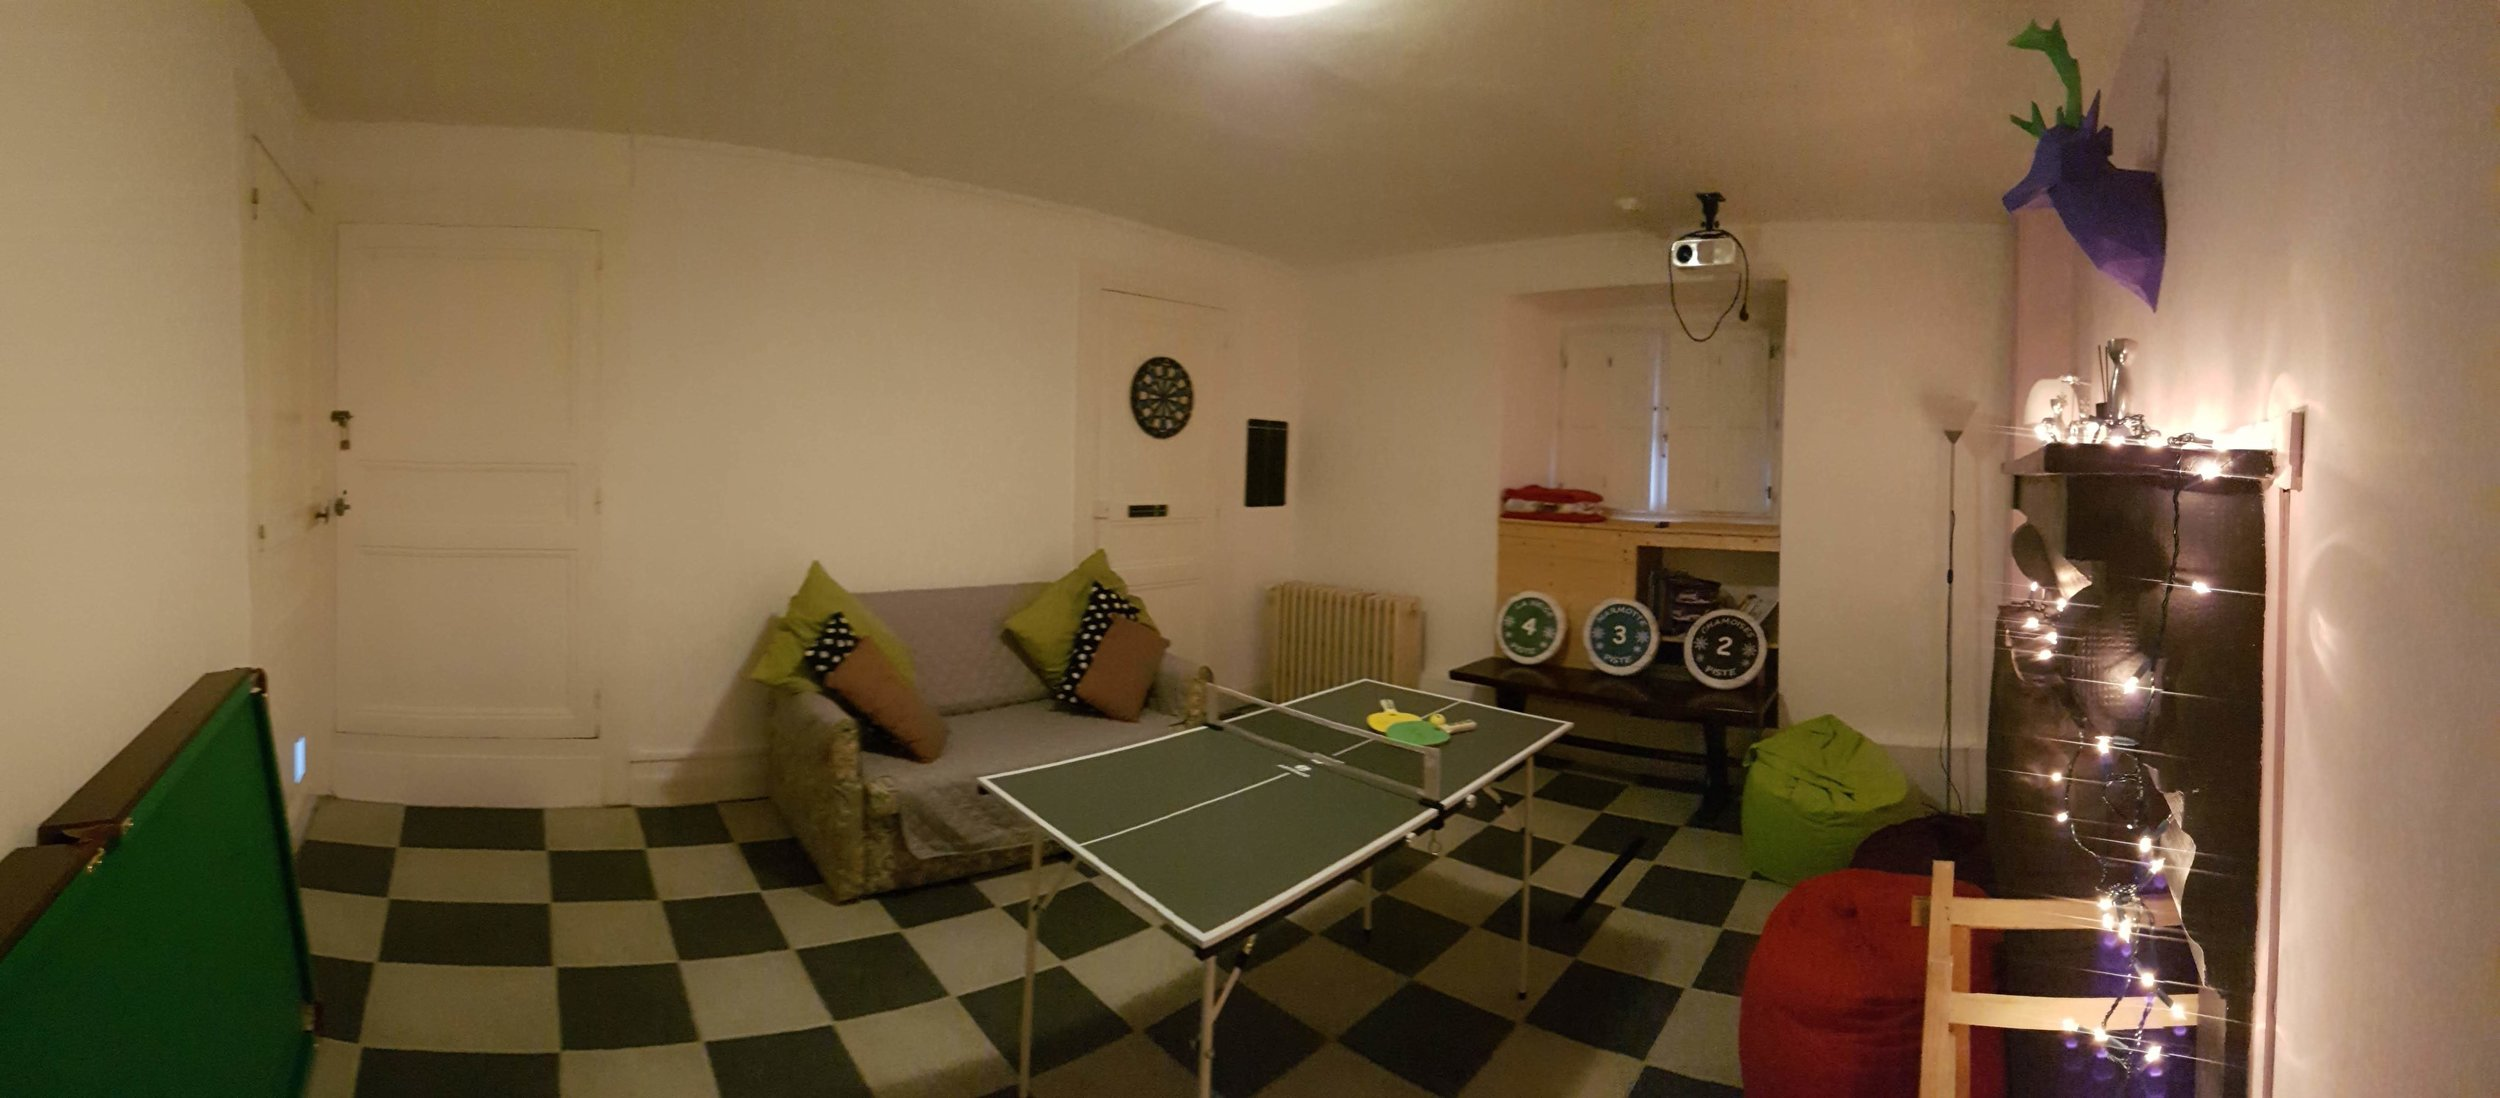 Games and Cinema Room